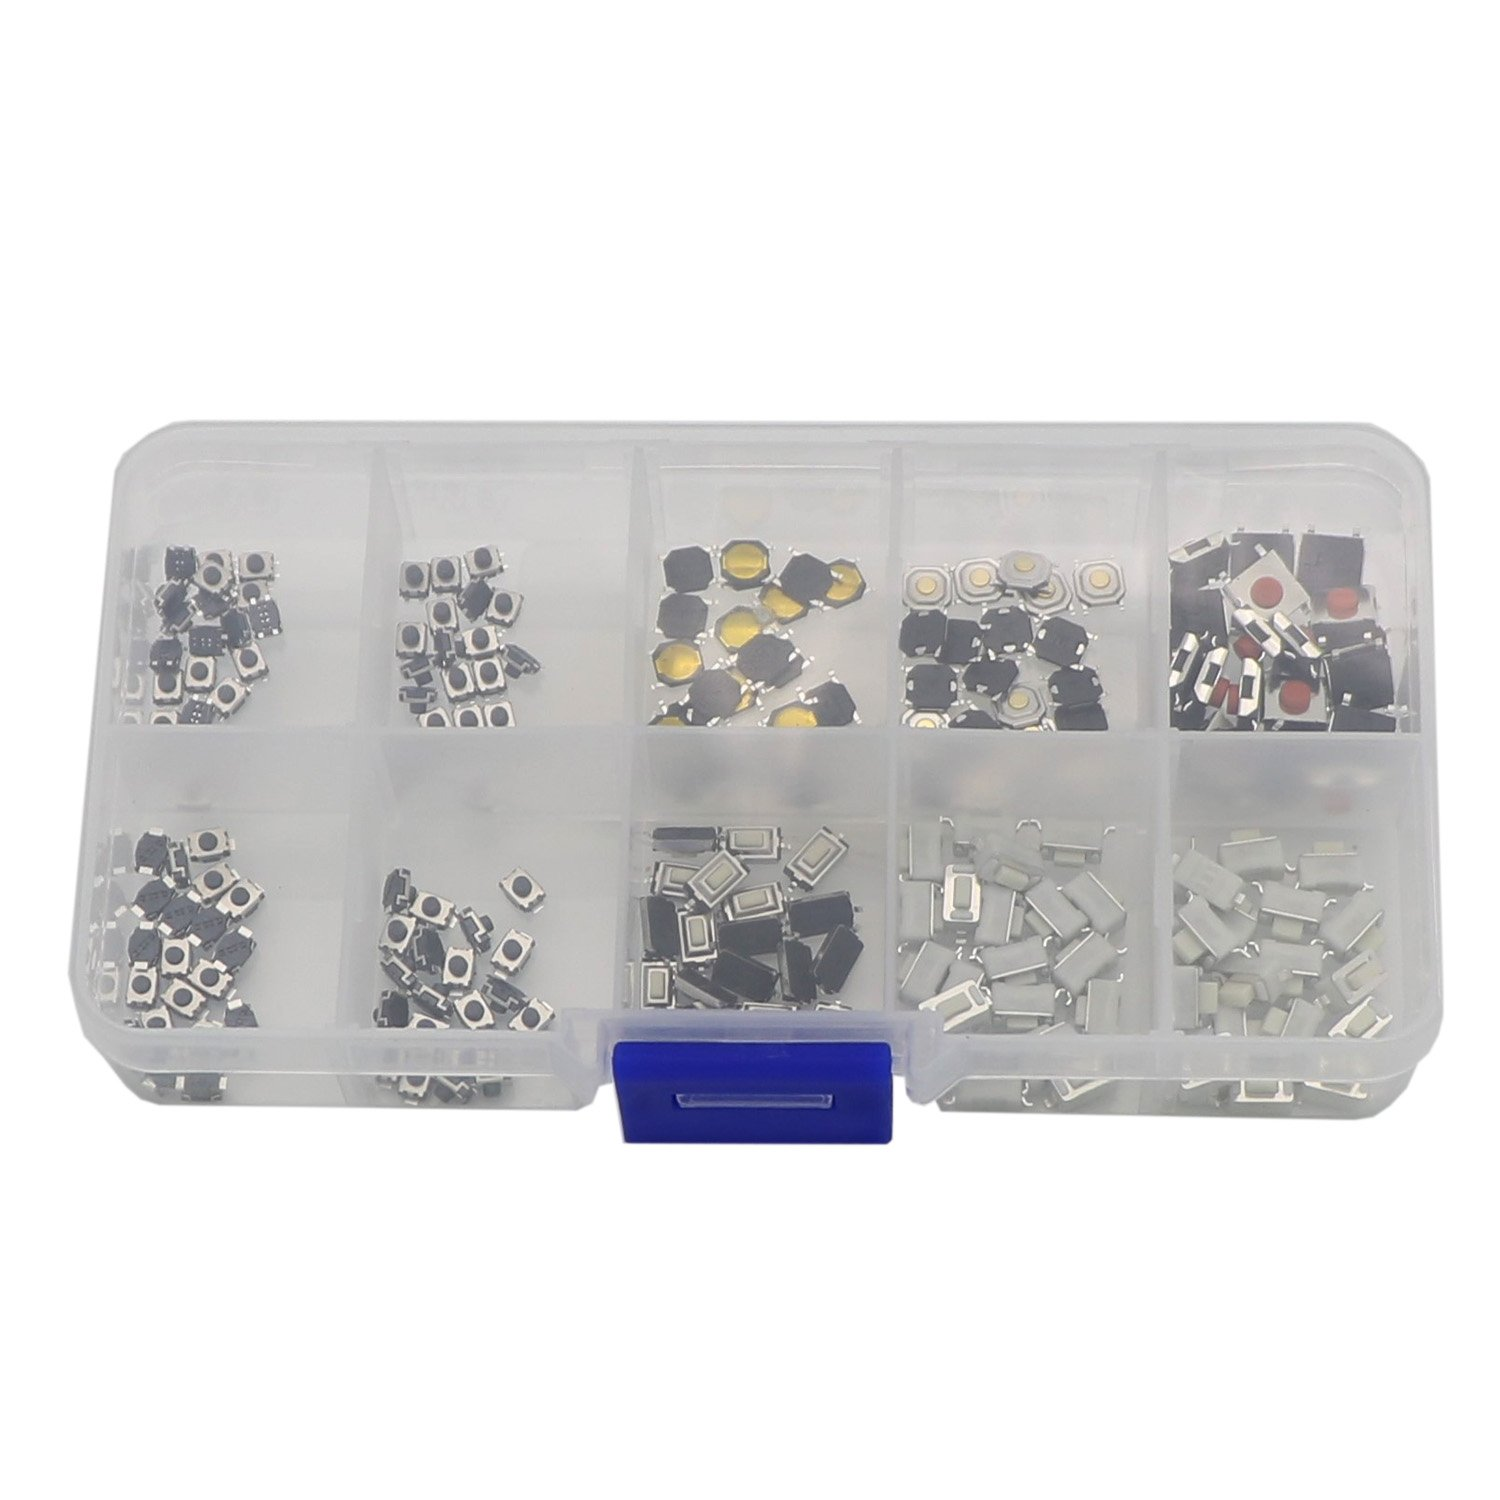 200 Pcs 10 Value Tactile Push Button Switch Micro Momentary Tact Assortment Kit